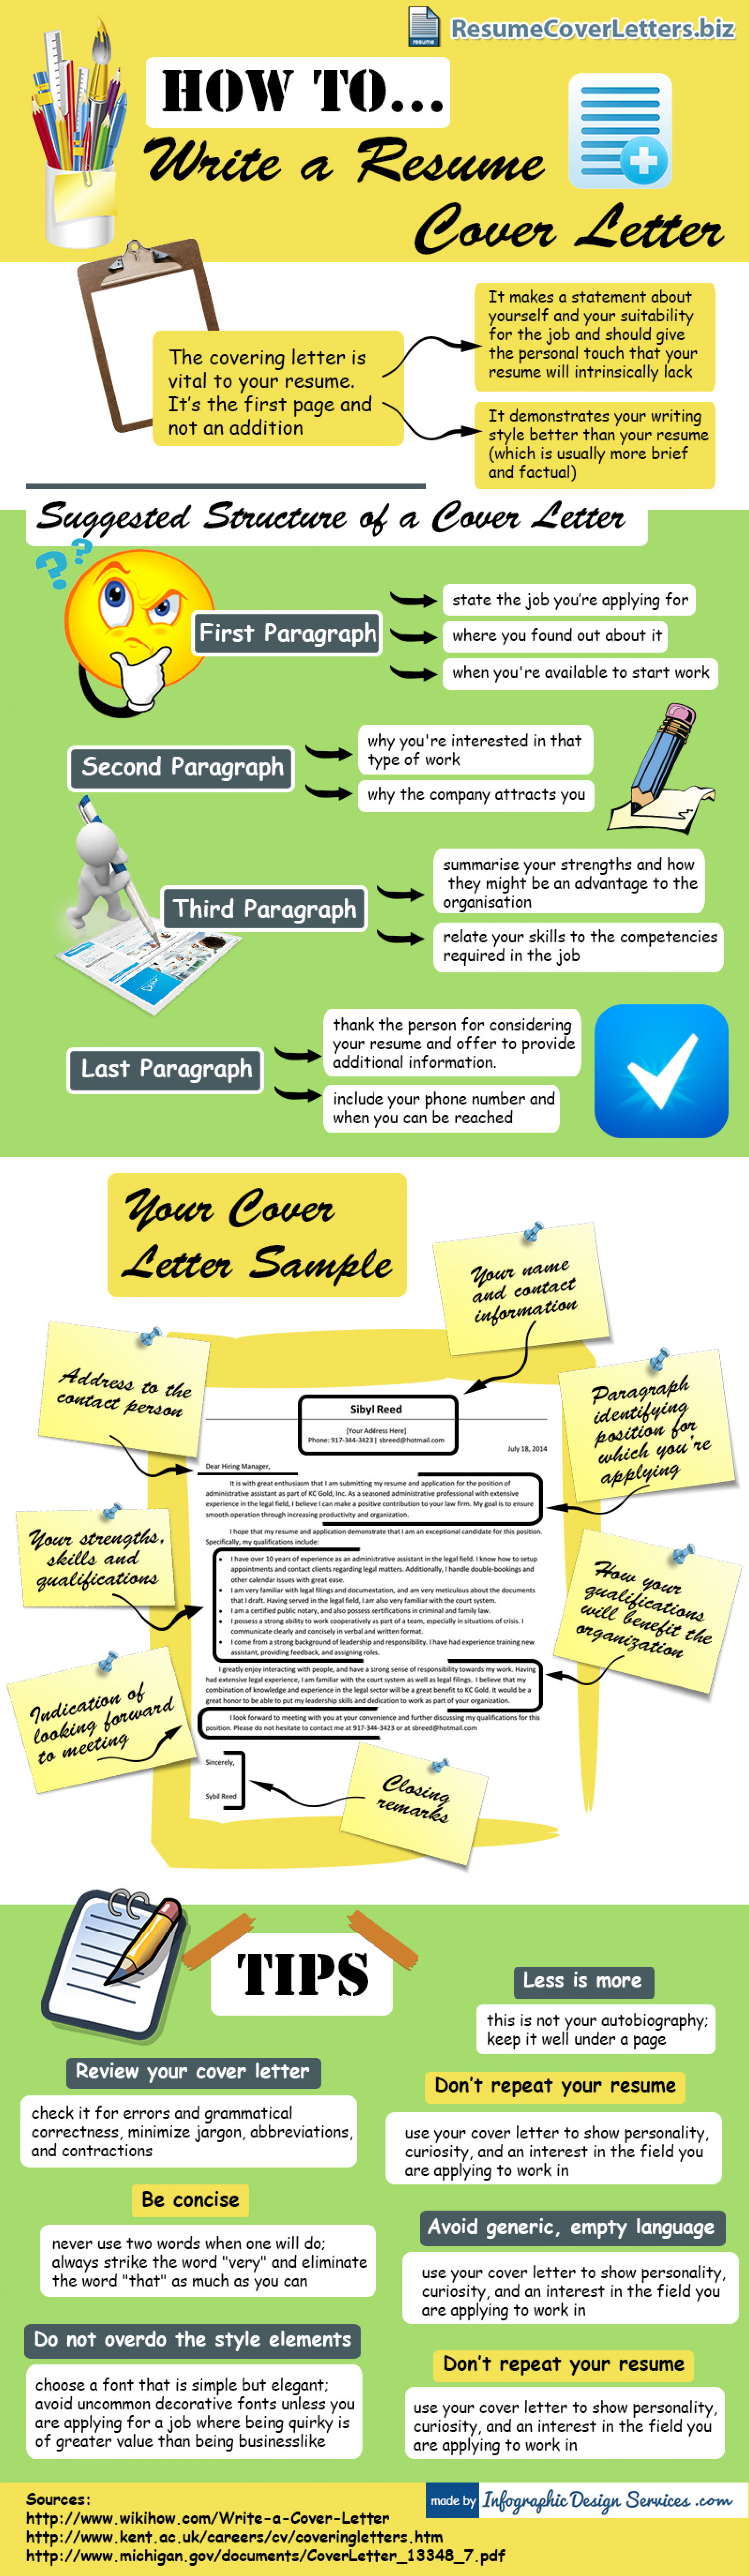 resume cover letter writing tips infographic - Cover Letter Writing Tips